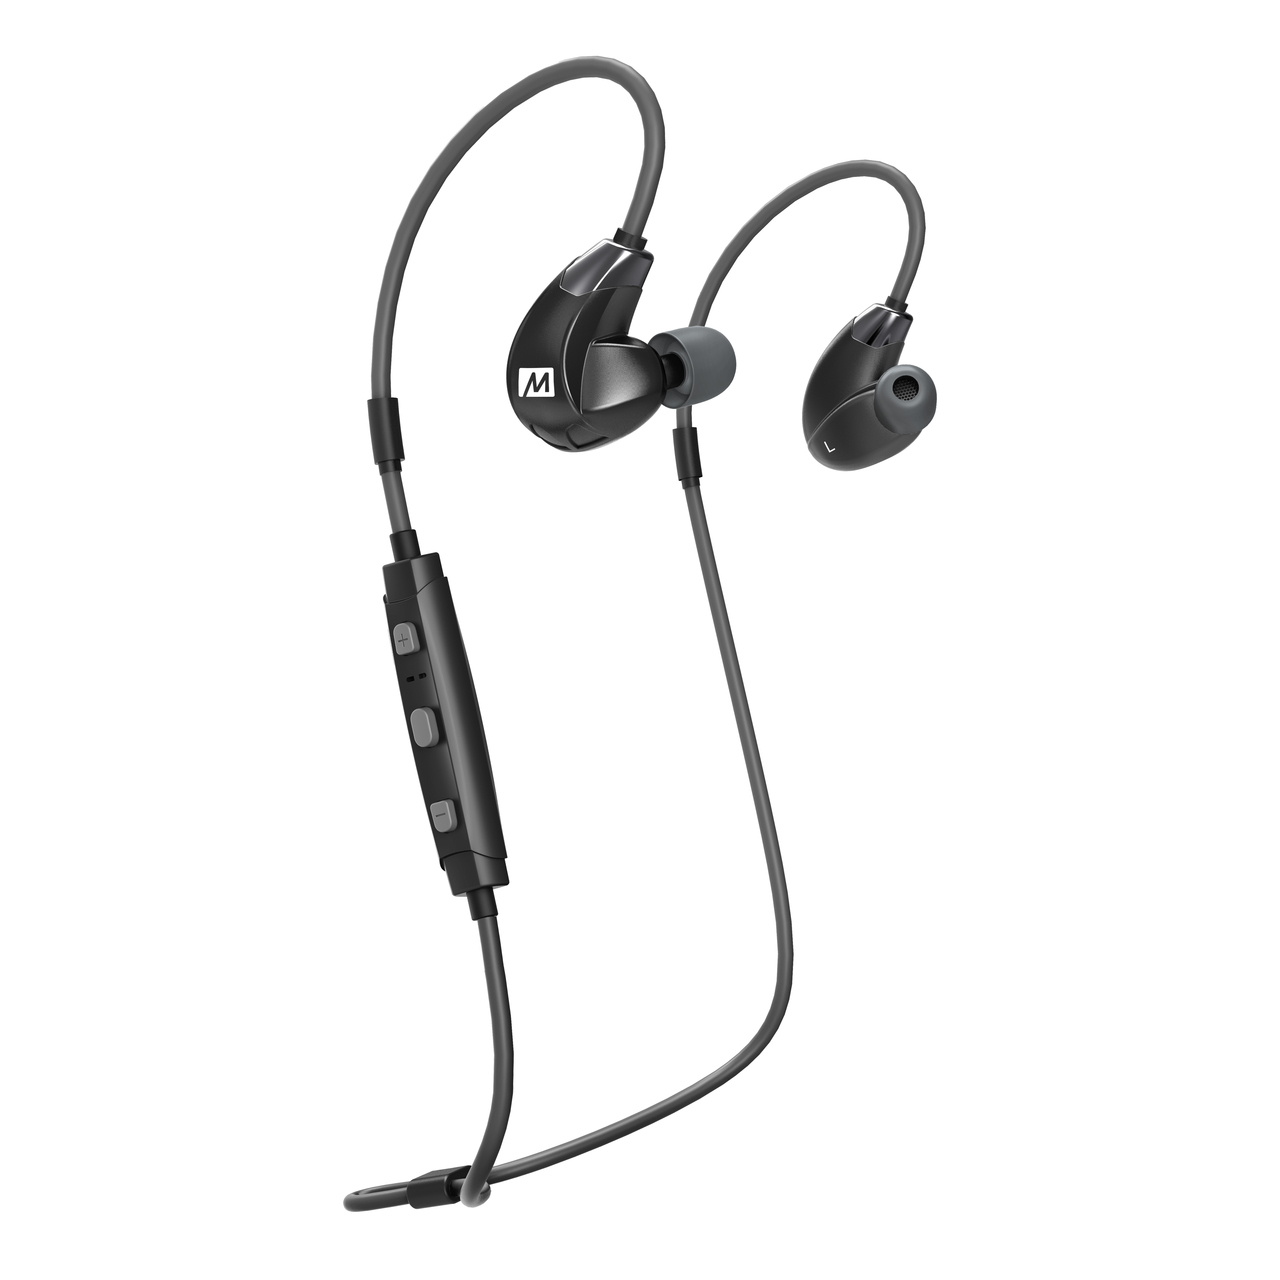 Mee Audio X7 Plus